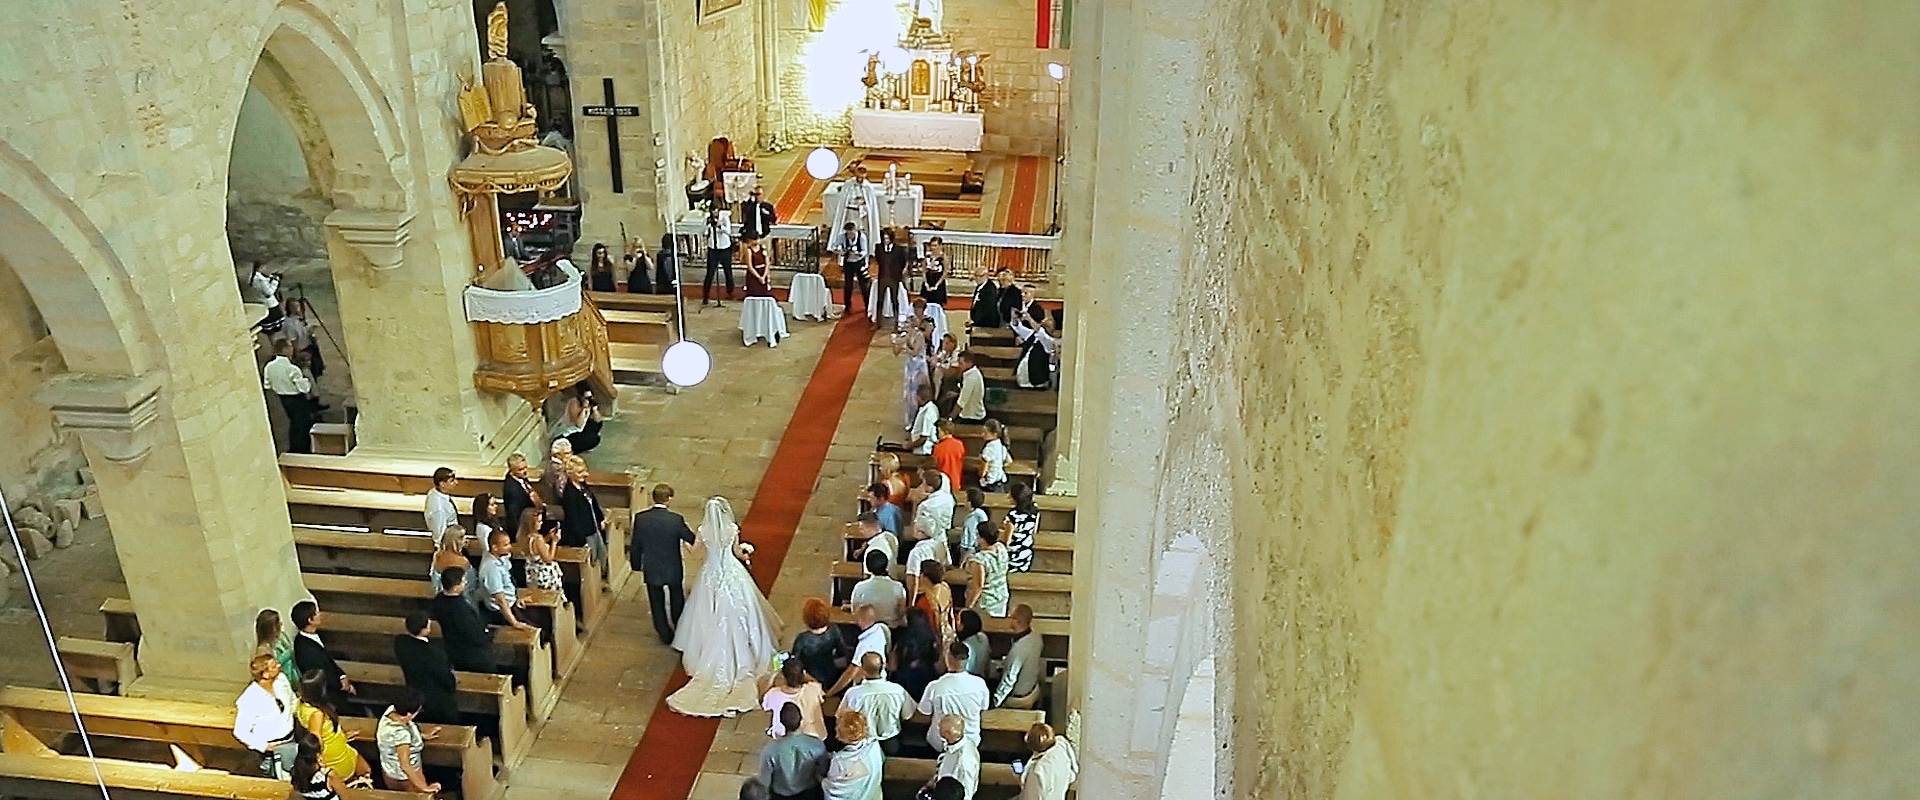 Wedding ceremony at Roman-Catholic church in Belapatfalva, Hungary